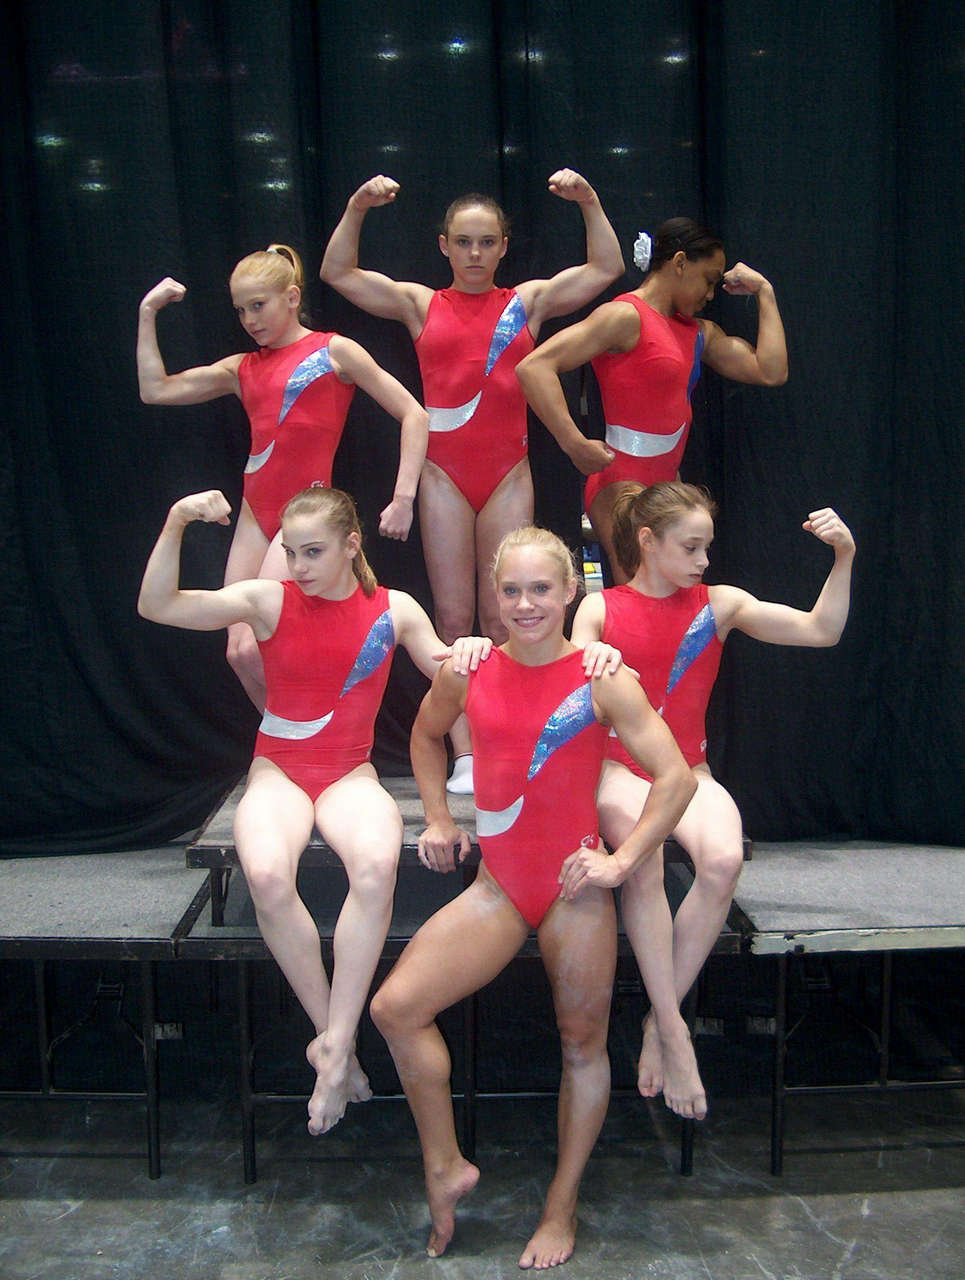 Courtney Mccool Muscles